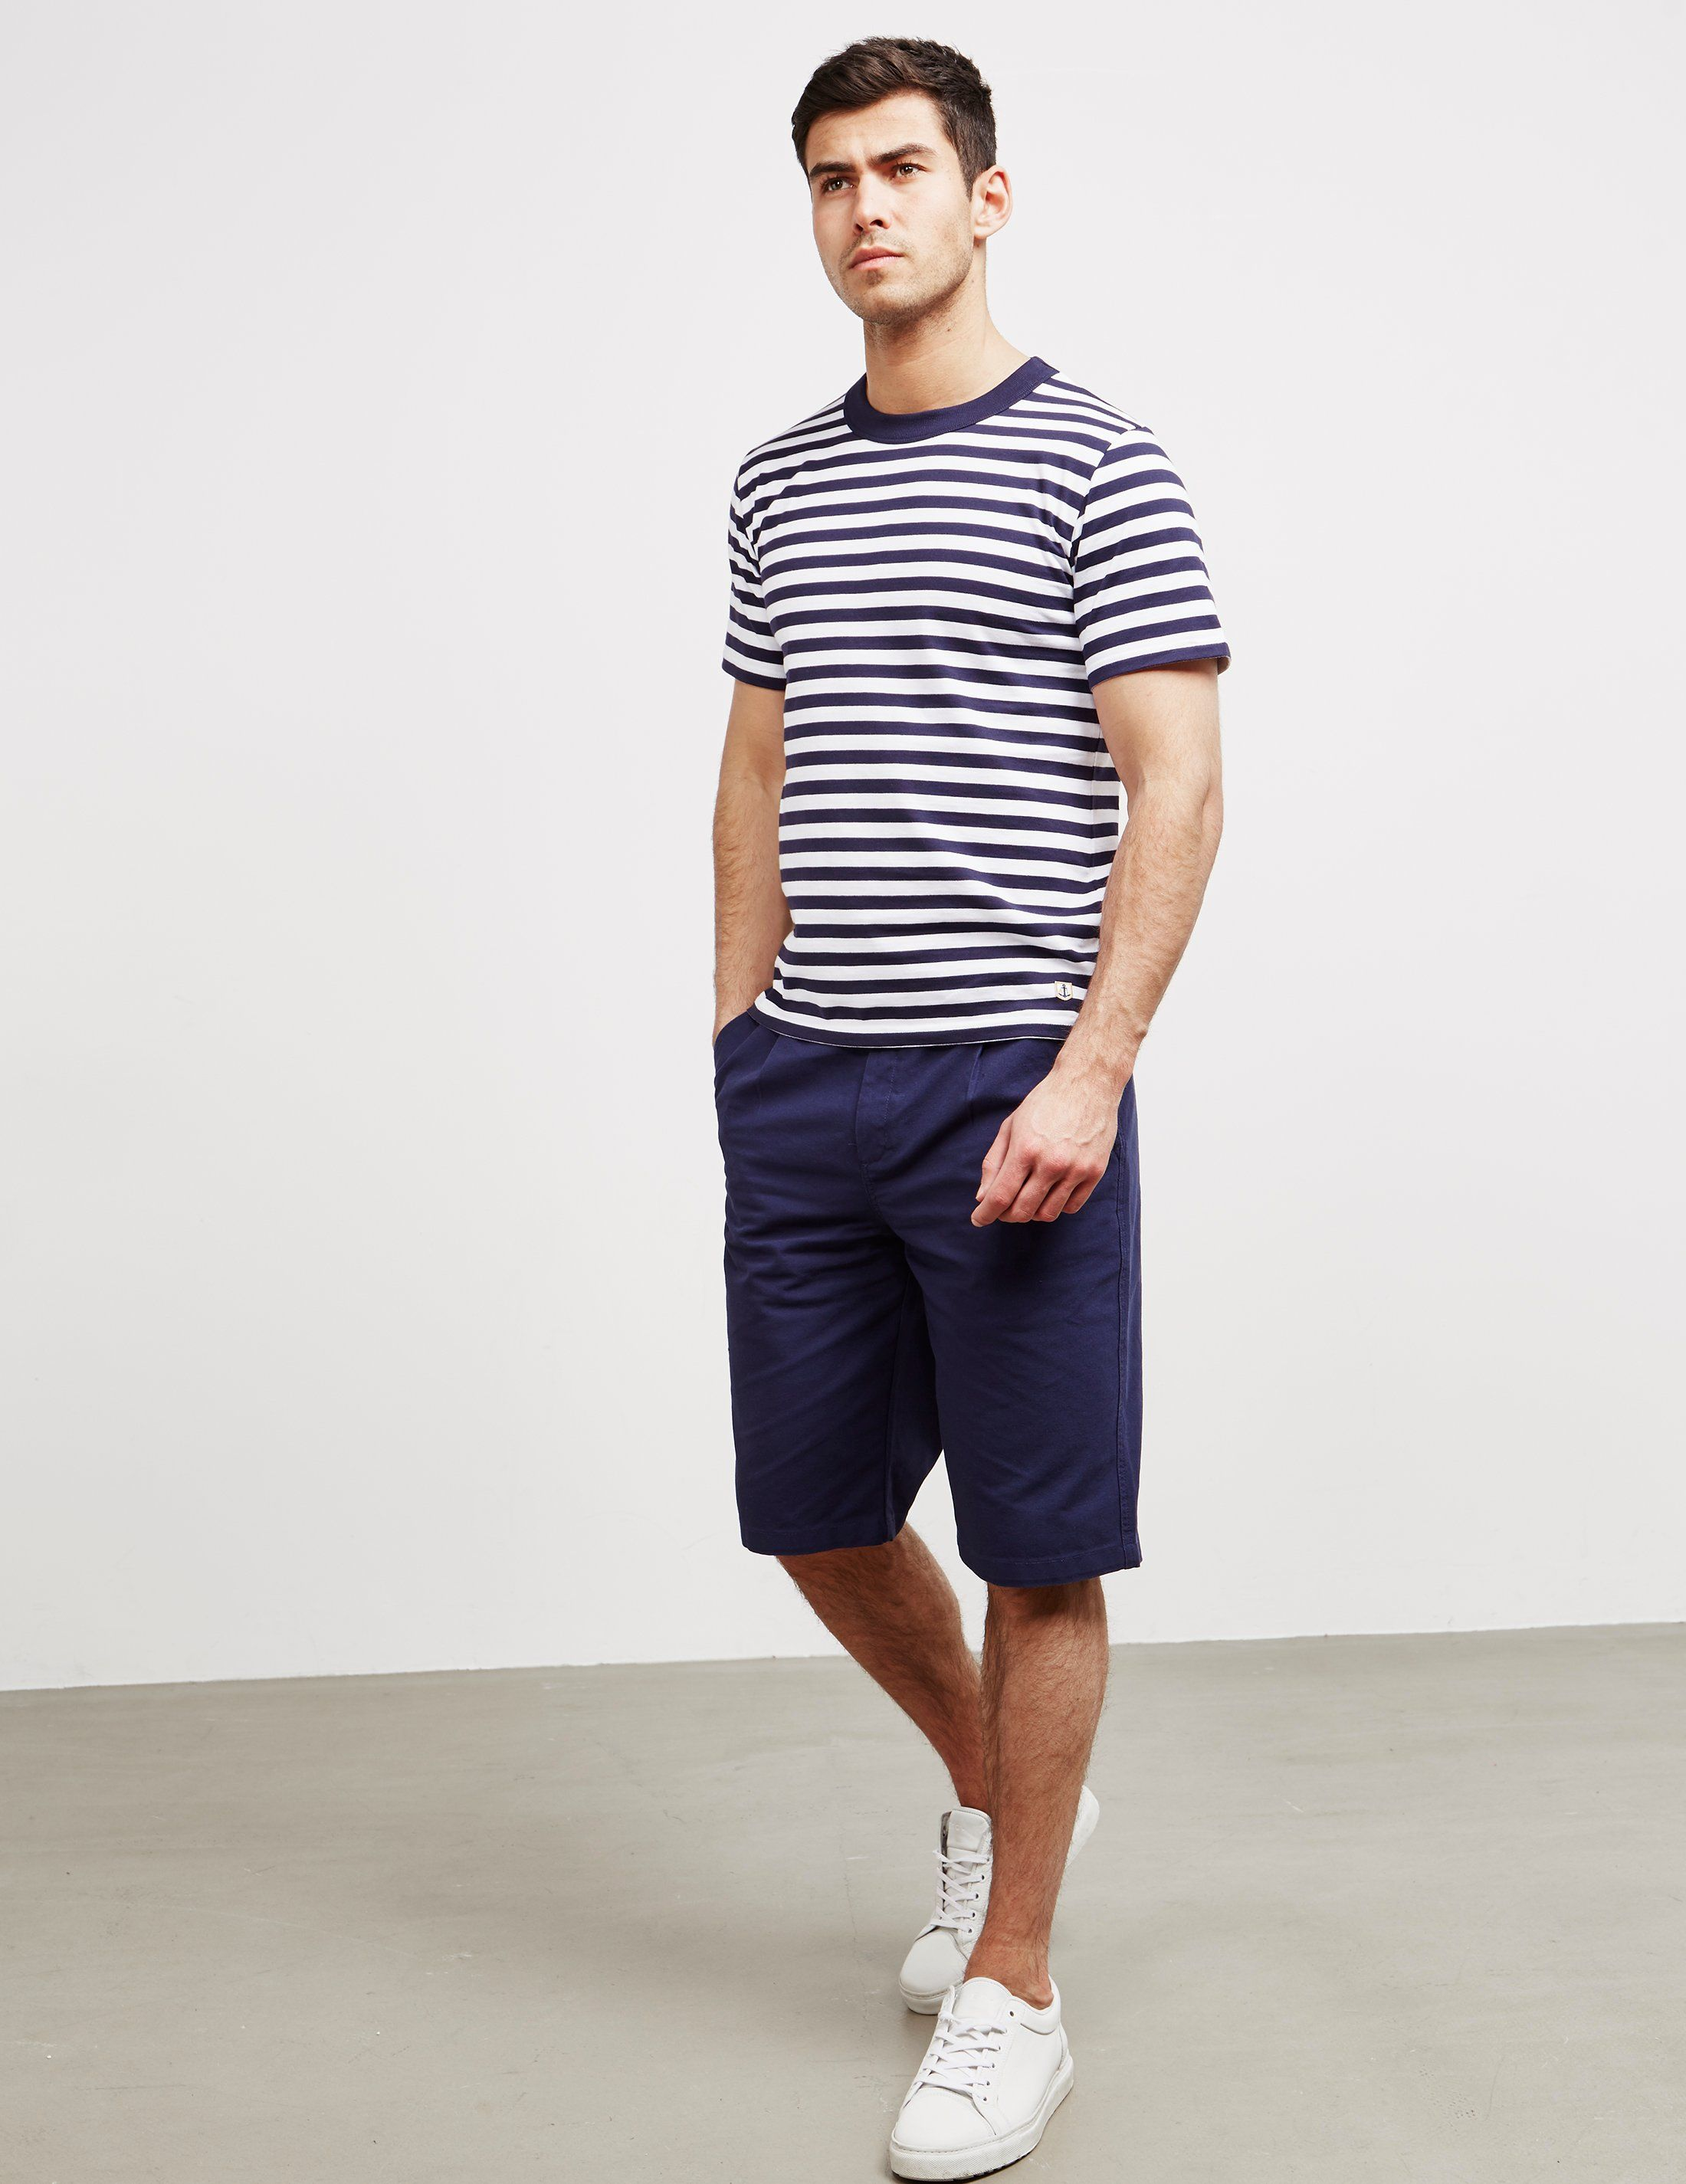 Armor Lux Thick Stripe Short Sleeve T-Shirt